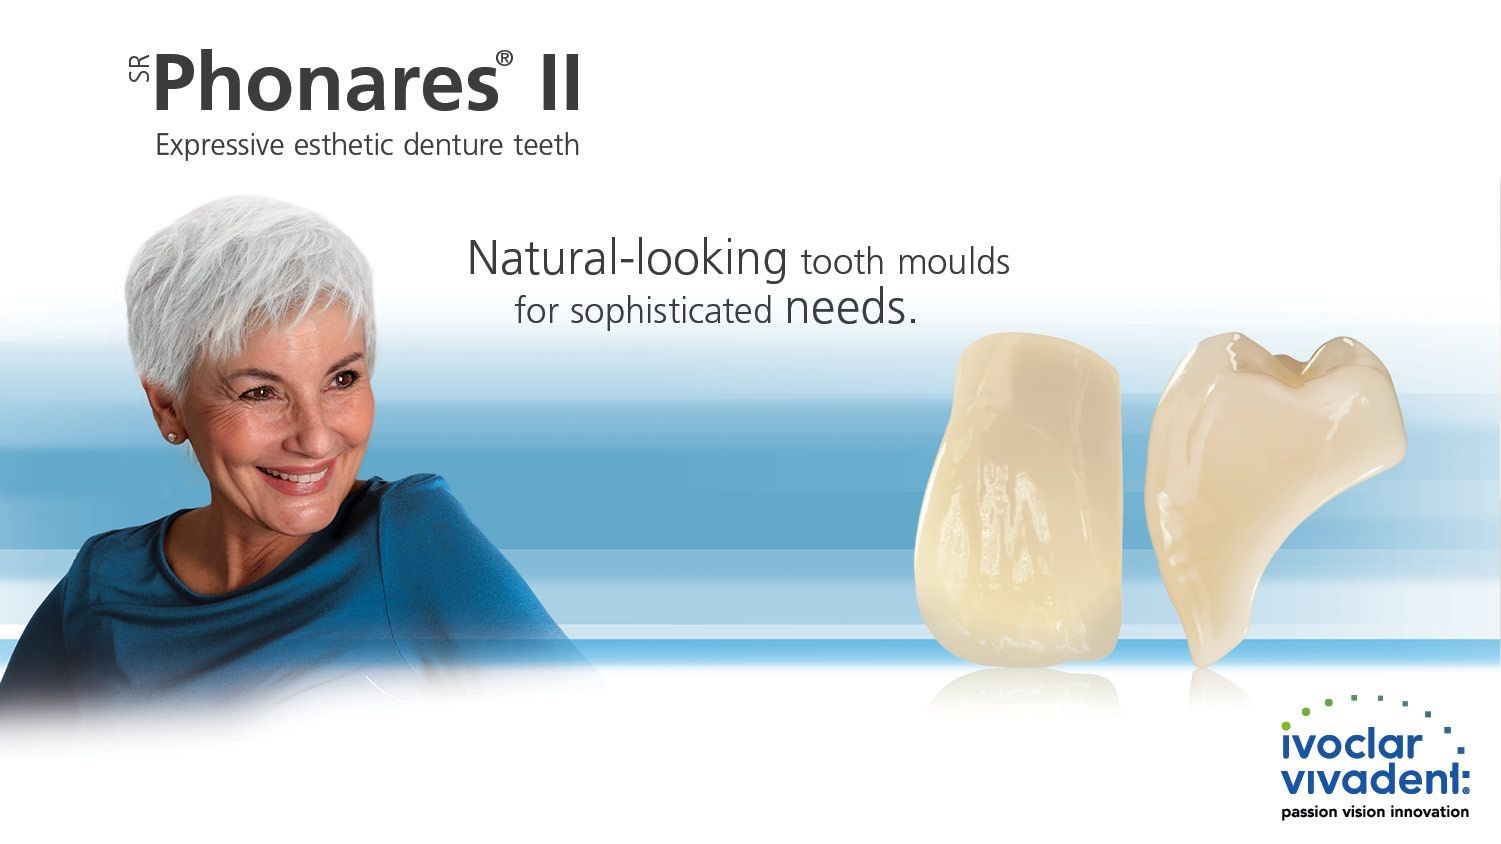 Phonares Esthetic Dentures - Total Denture Care